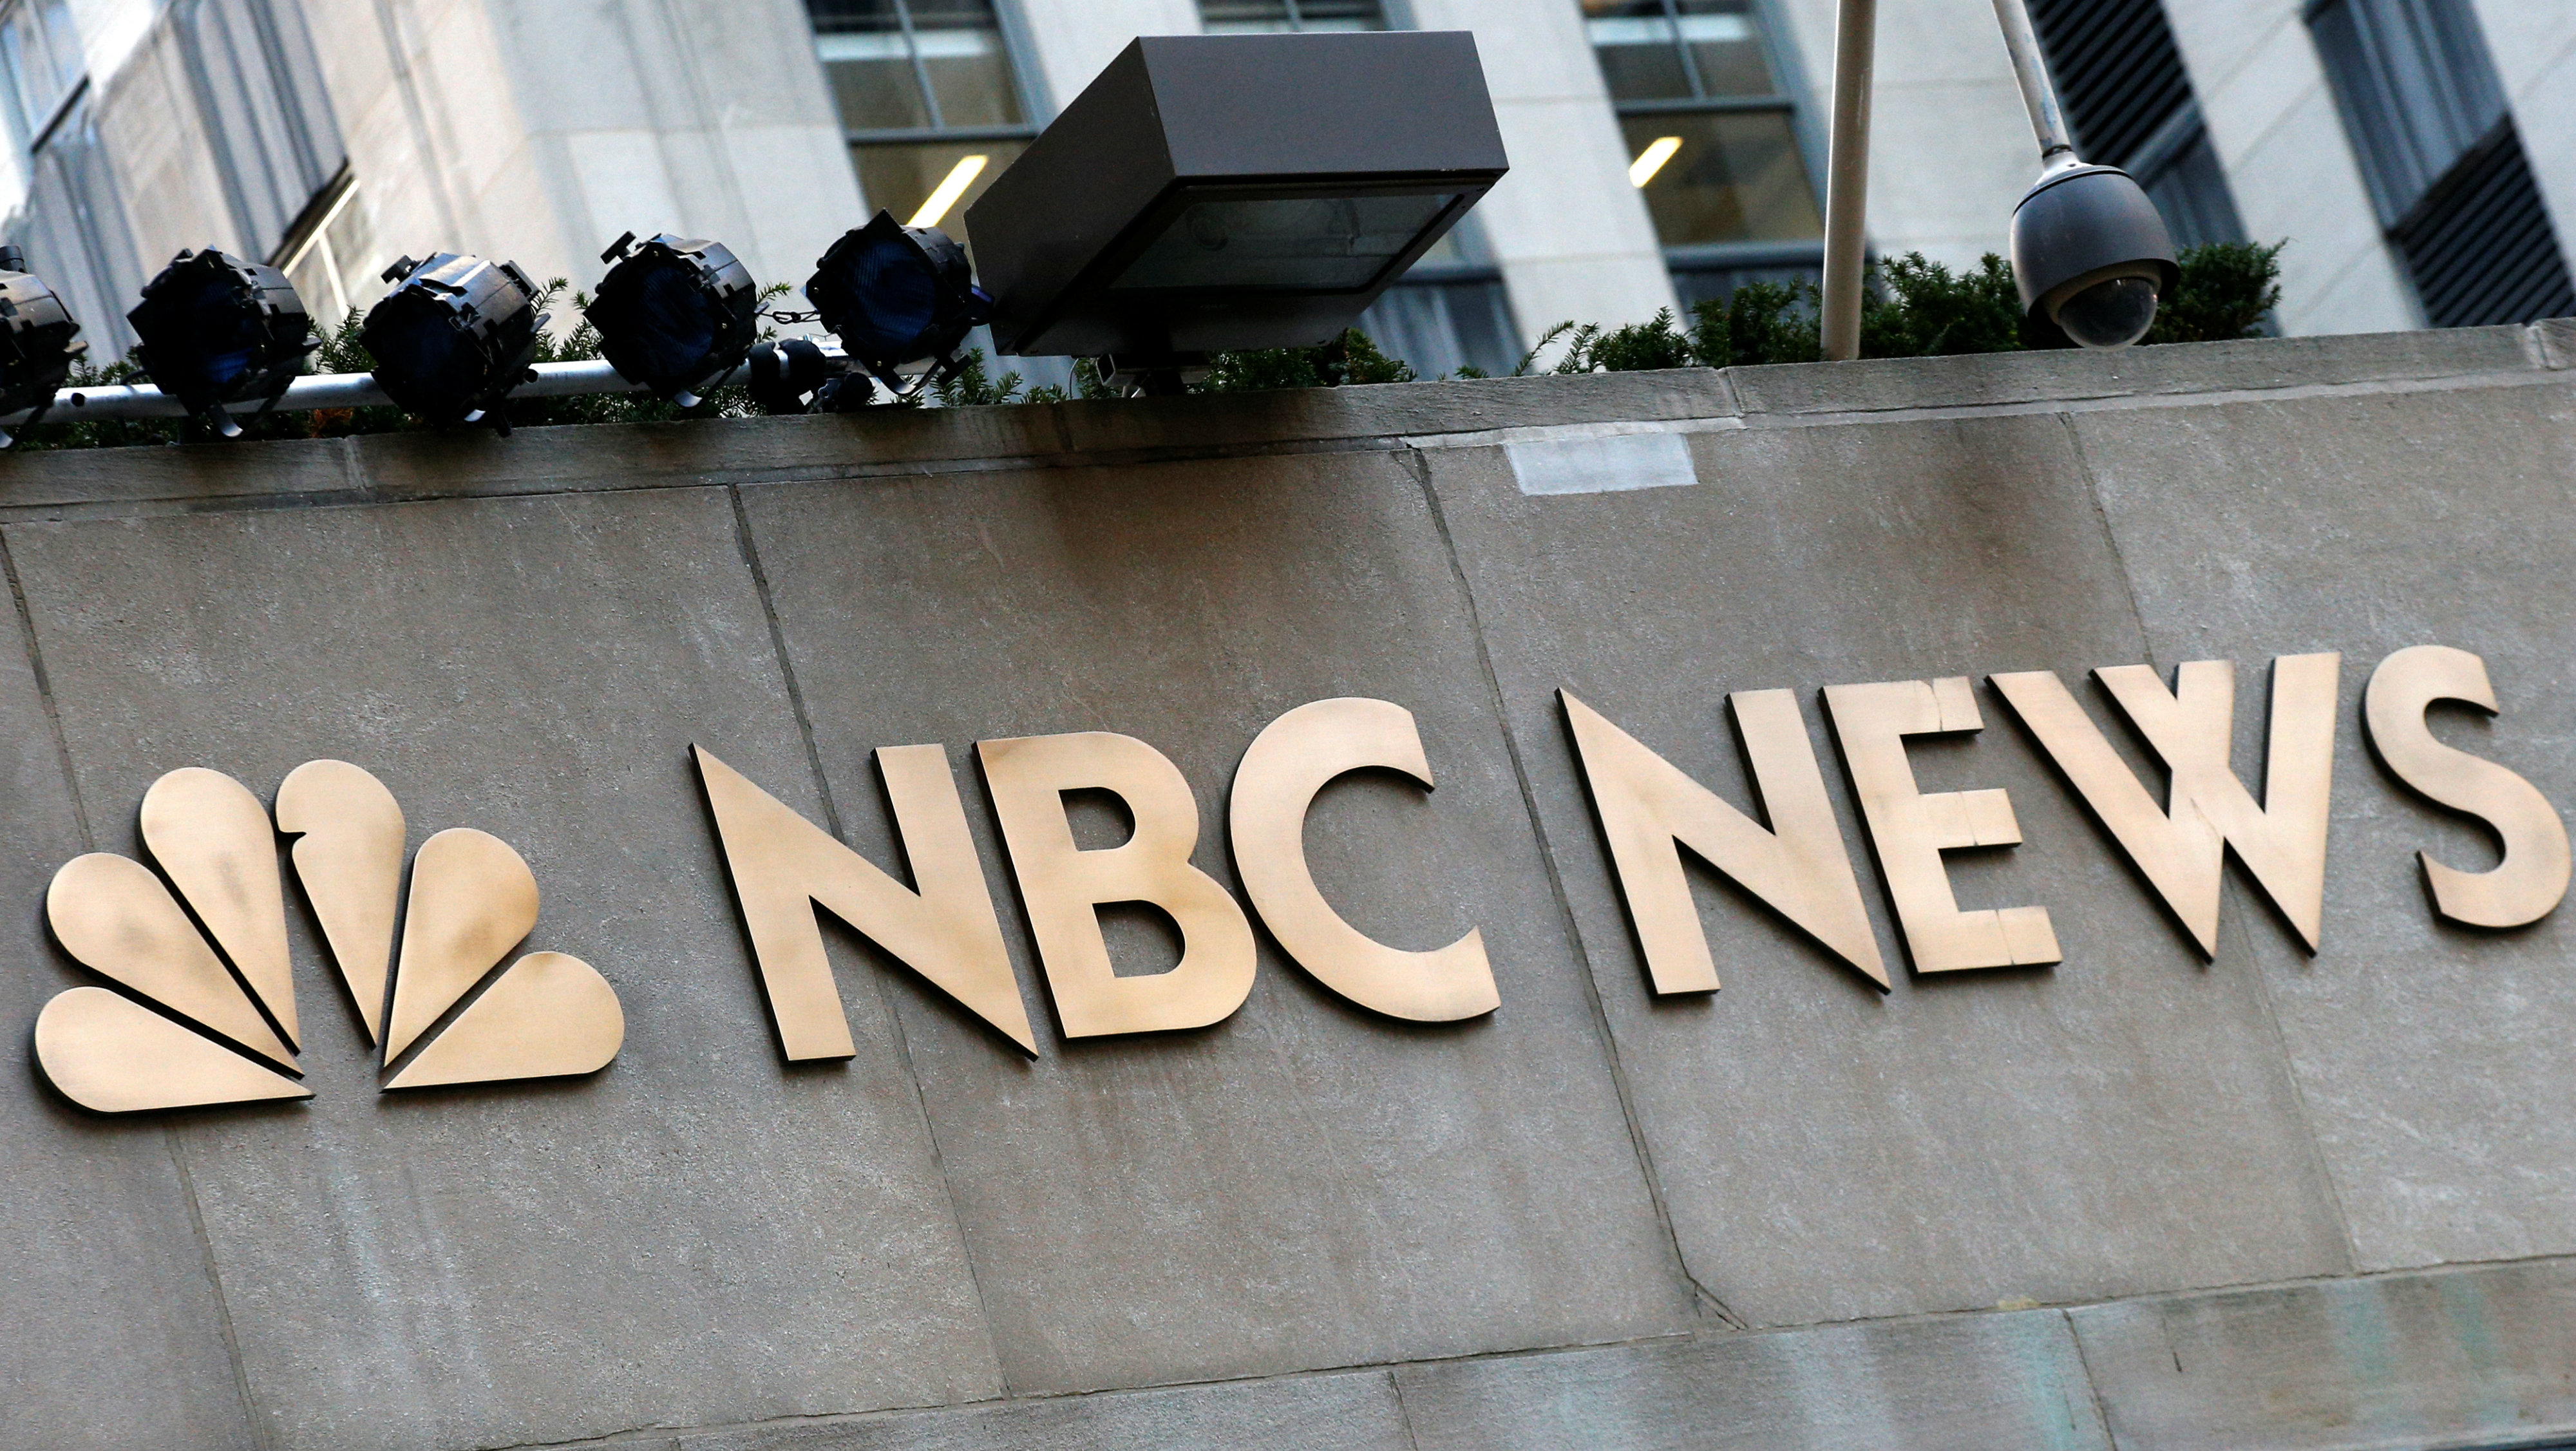 NBC News is rocked by new sexual harassment allegations.